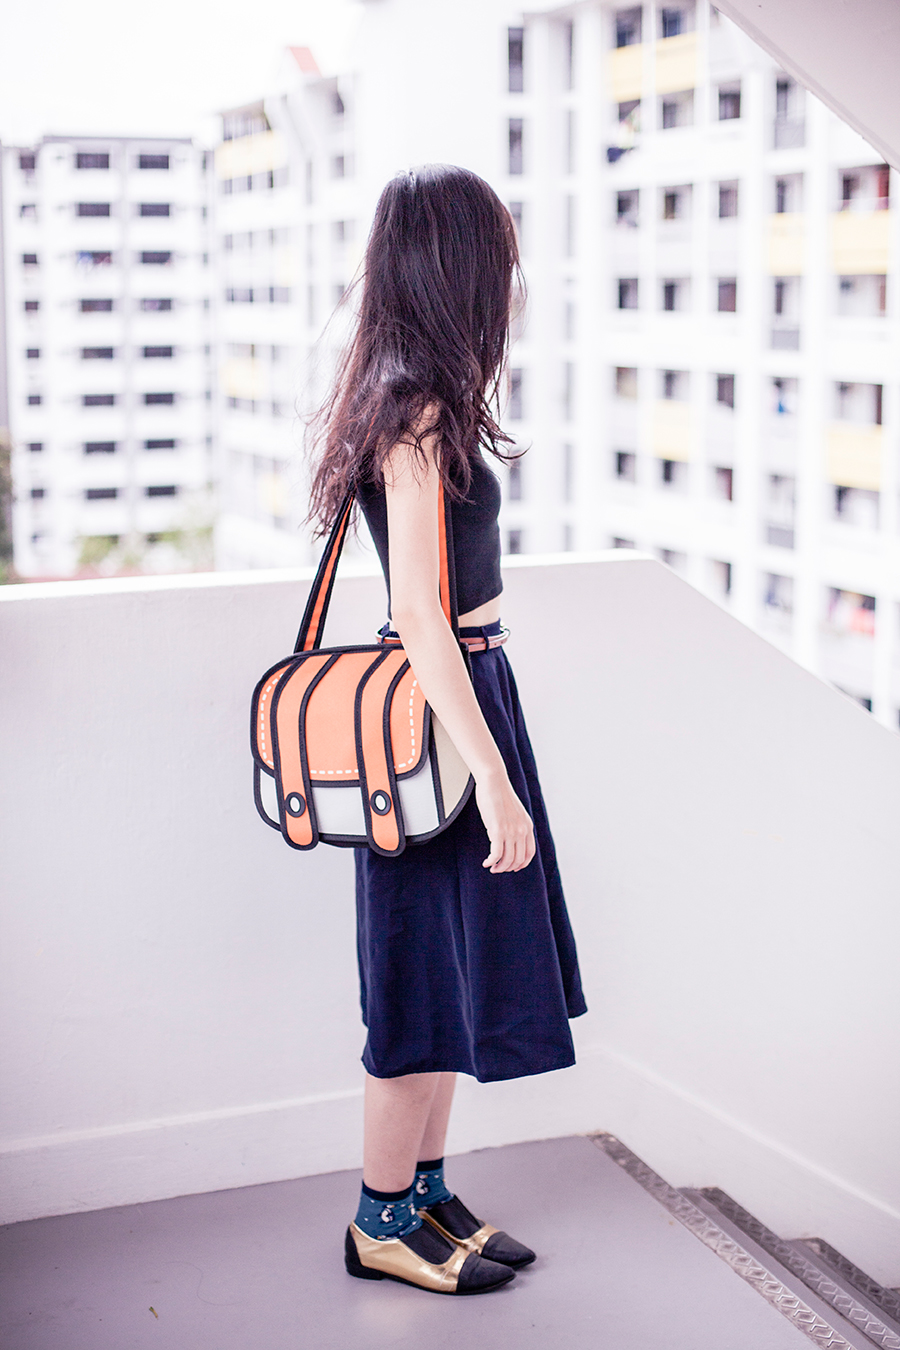 2D satchel bag from Taobao, black & gold pointed flats from Something Borrowed via Zalora.